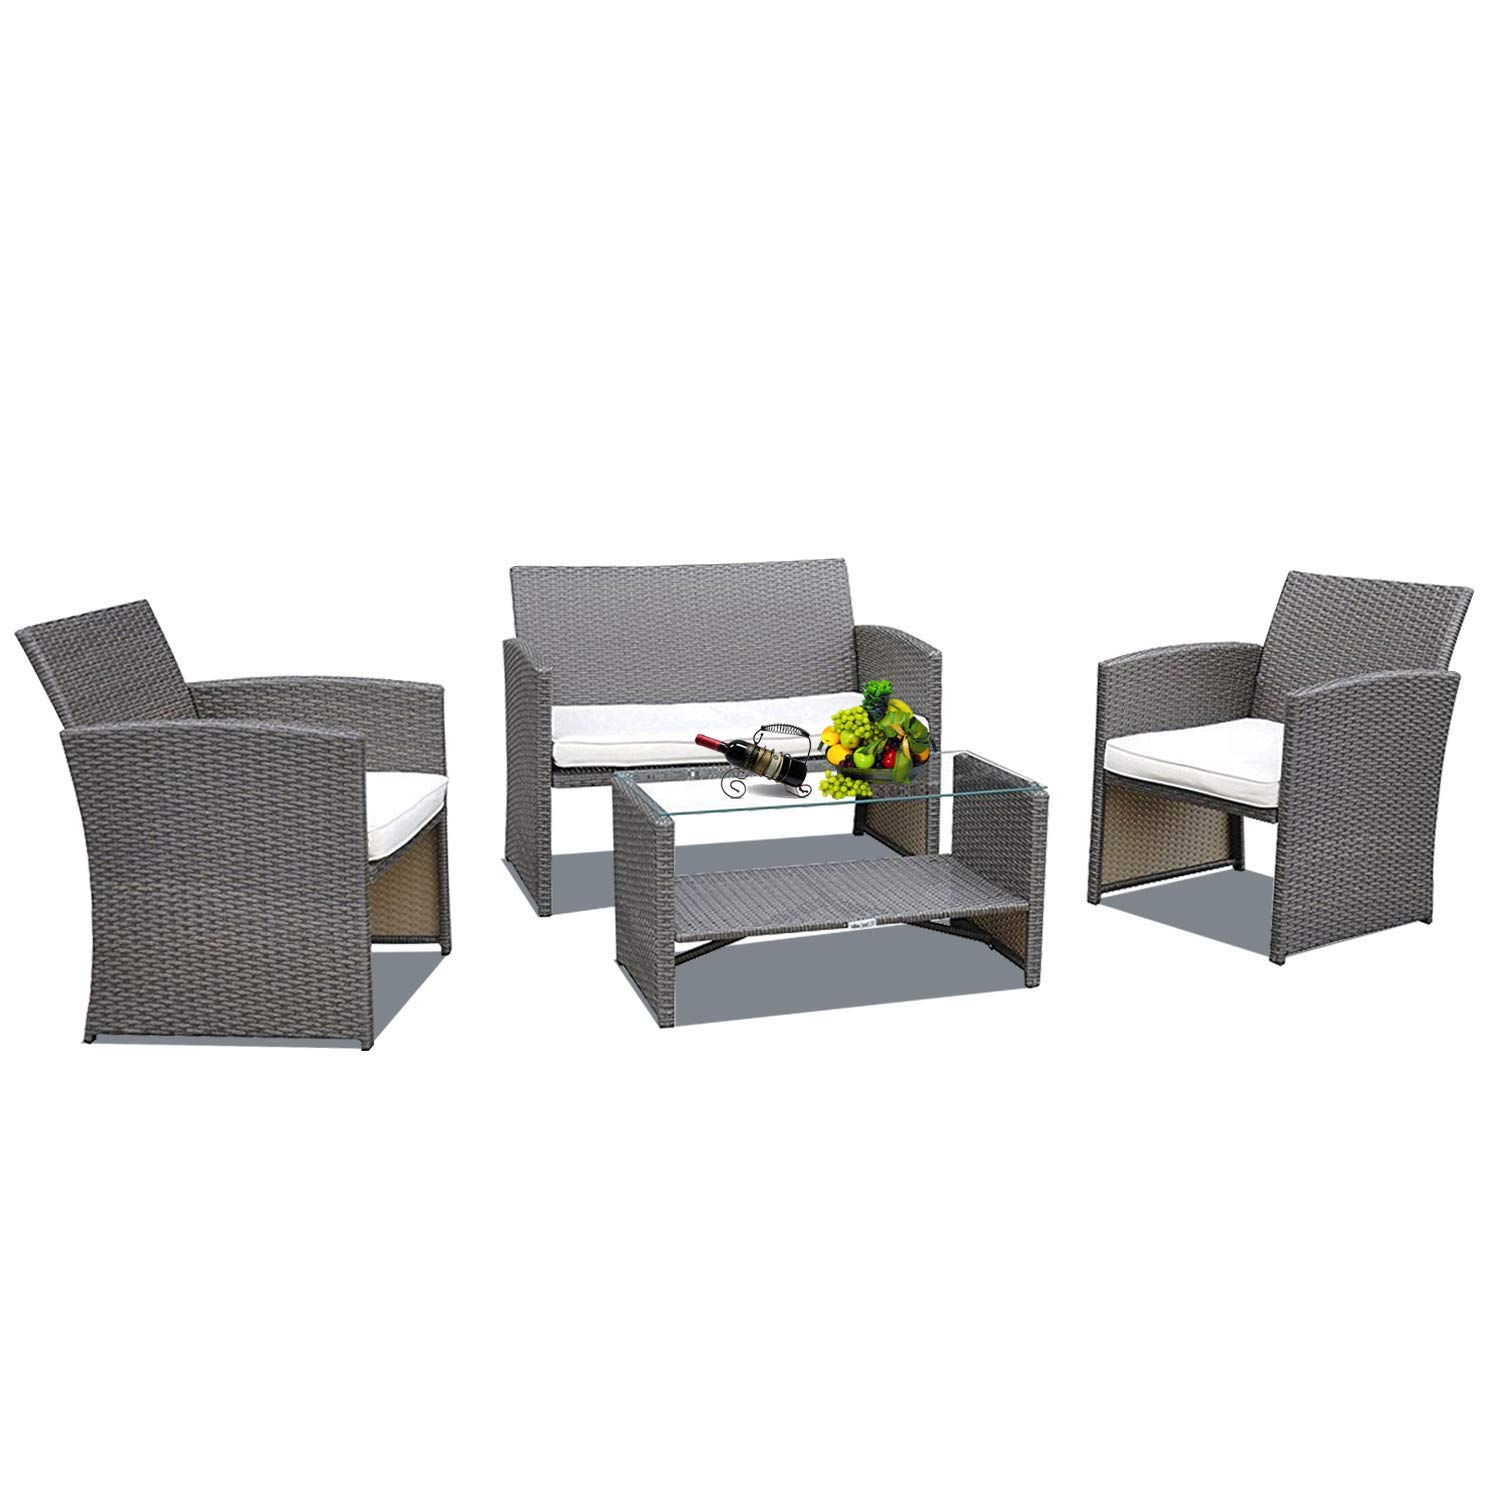 Cheap Gray Patio Cushions Find Gray Patio Cushions Deals On Line At